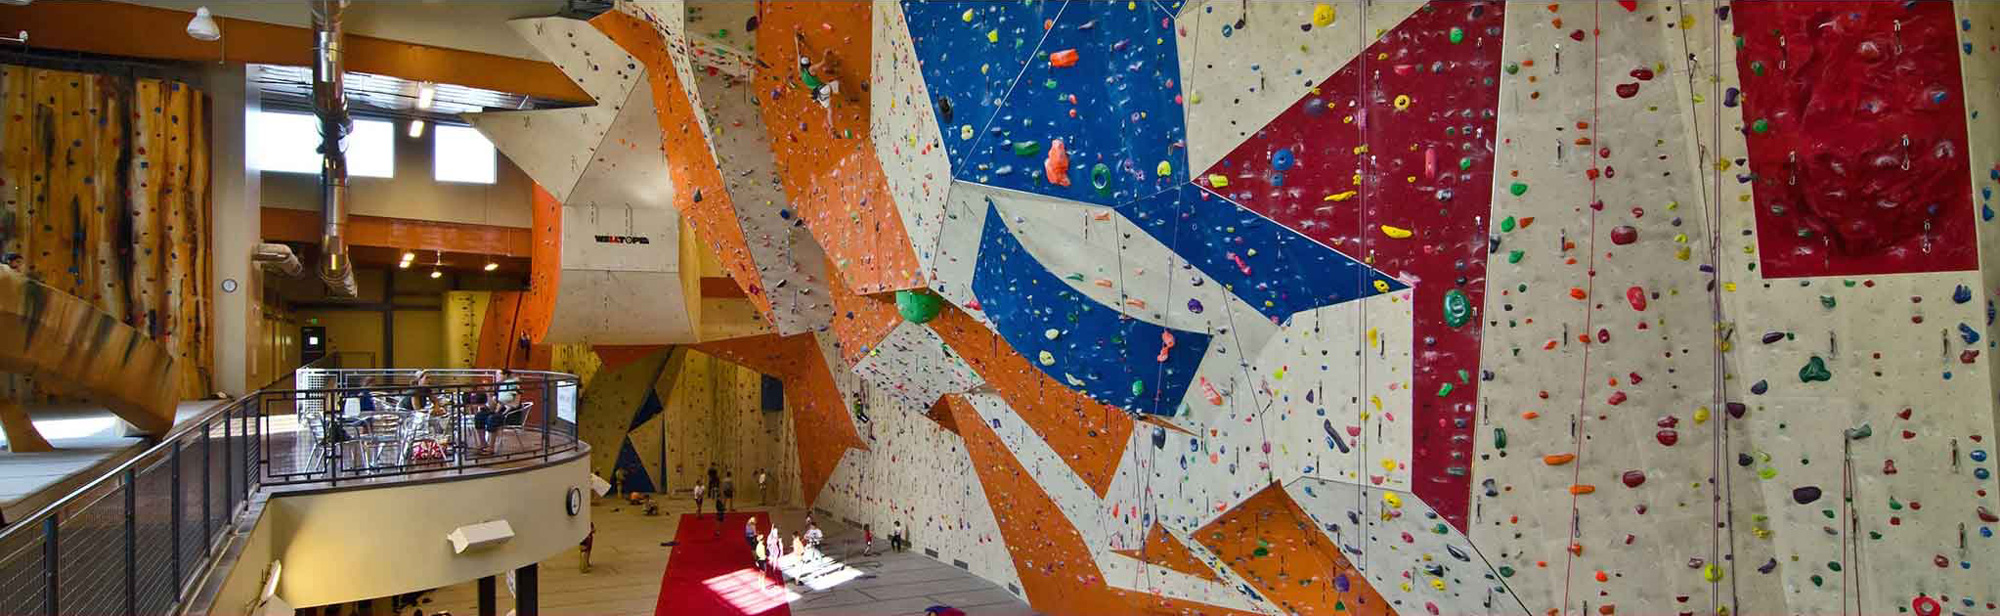 Stone Summit Climbing and Fitness Gyms.